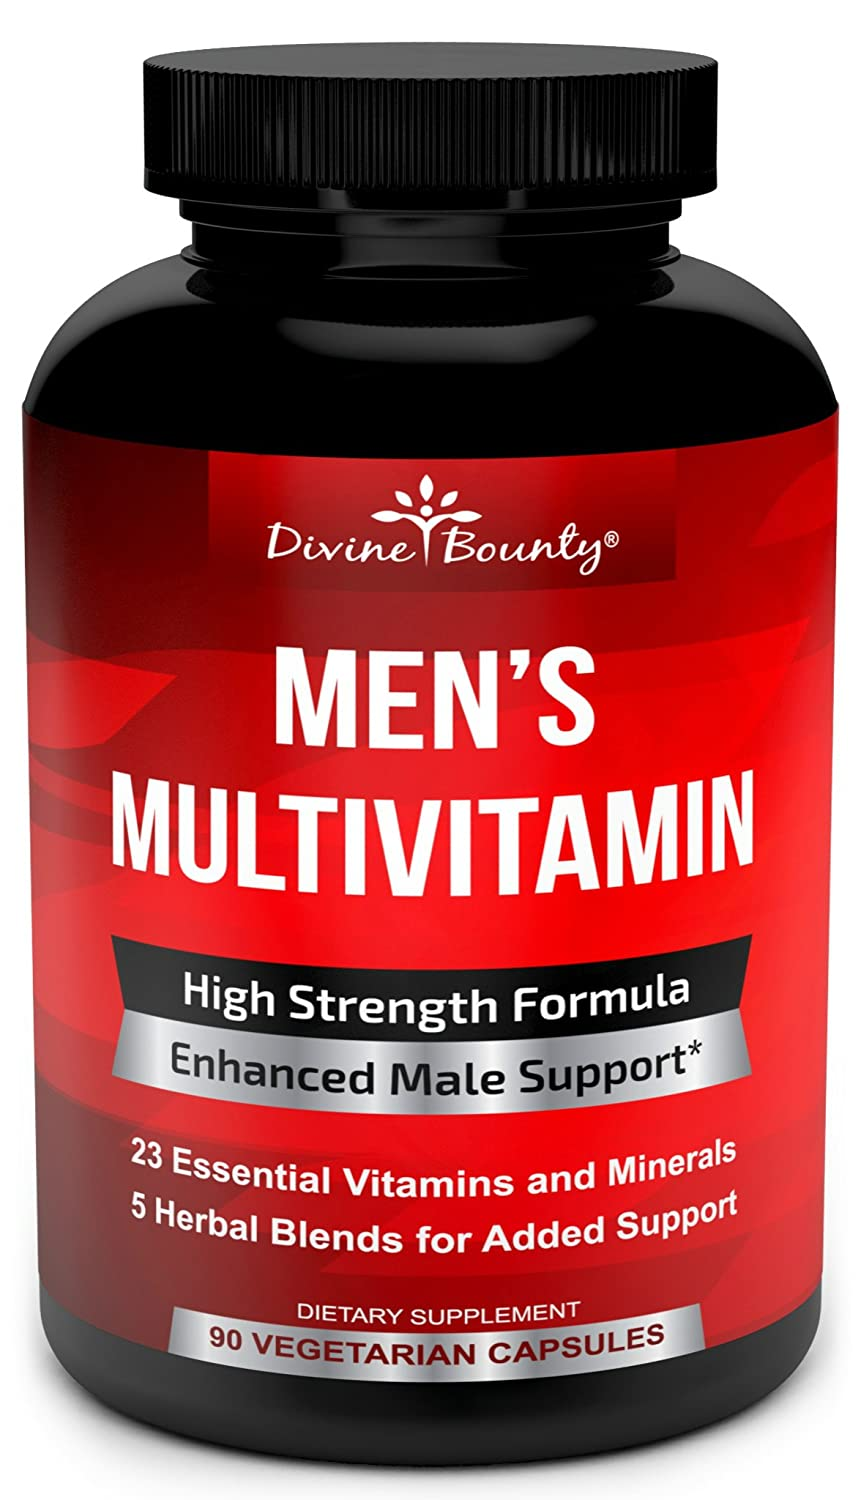 Amazon.com: Multivitamina para Hombre - Multivitamina diaria ...